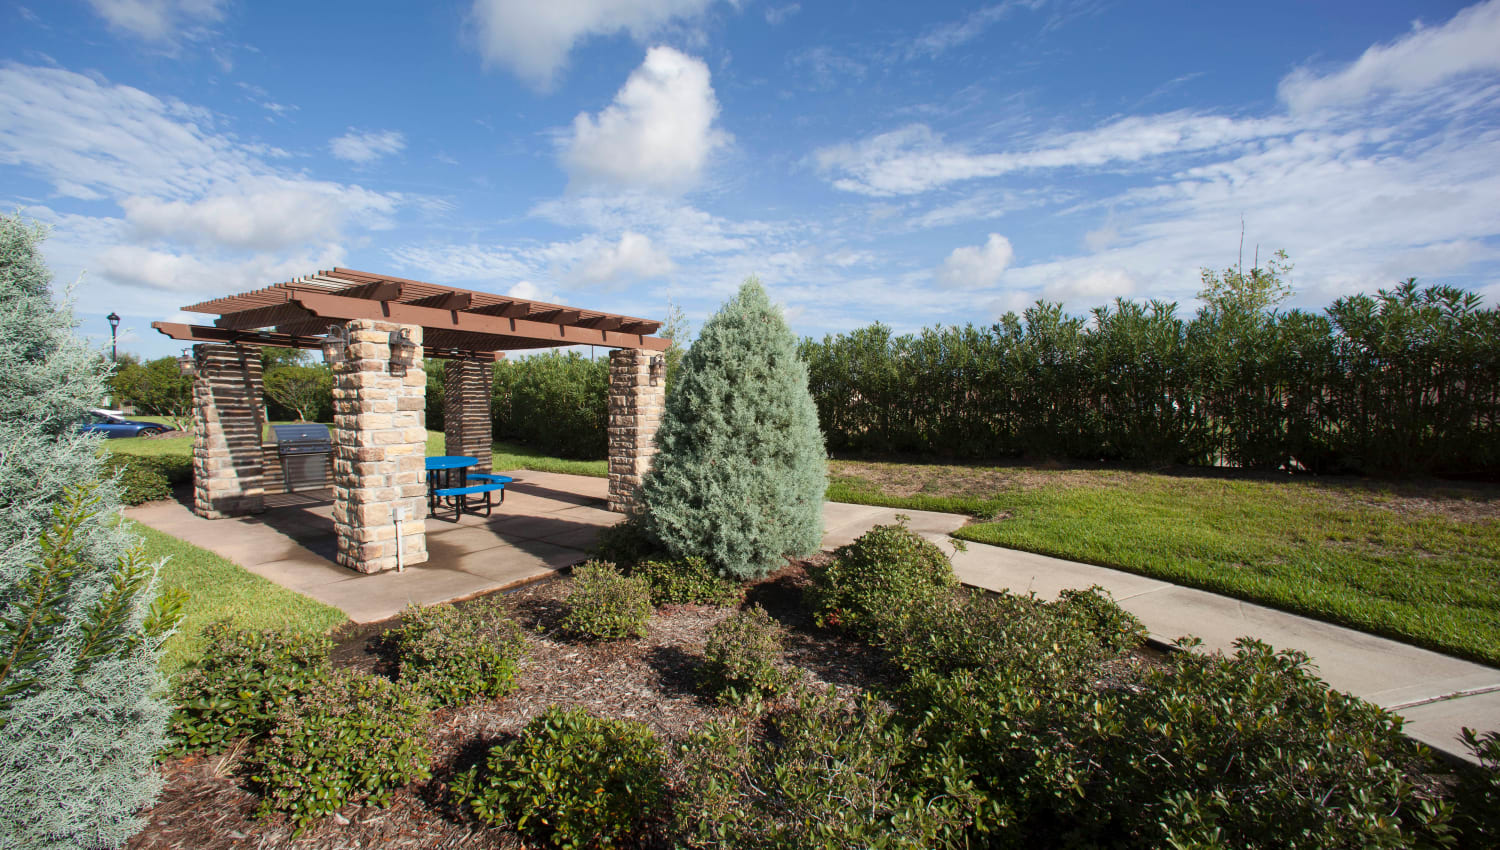 Picnic area surrounded by well-manicured shrubs at Olympus Katy Ranch in Katy, Texas